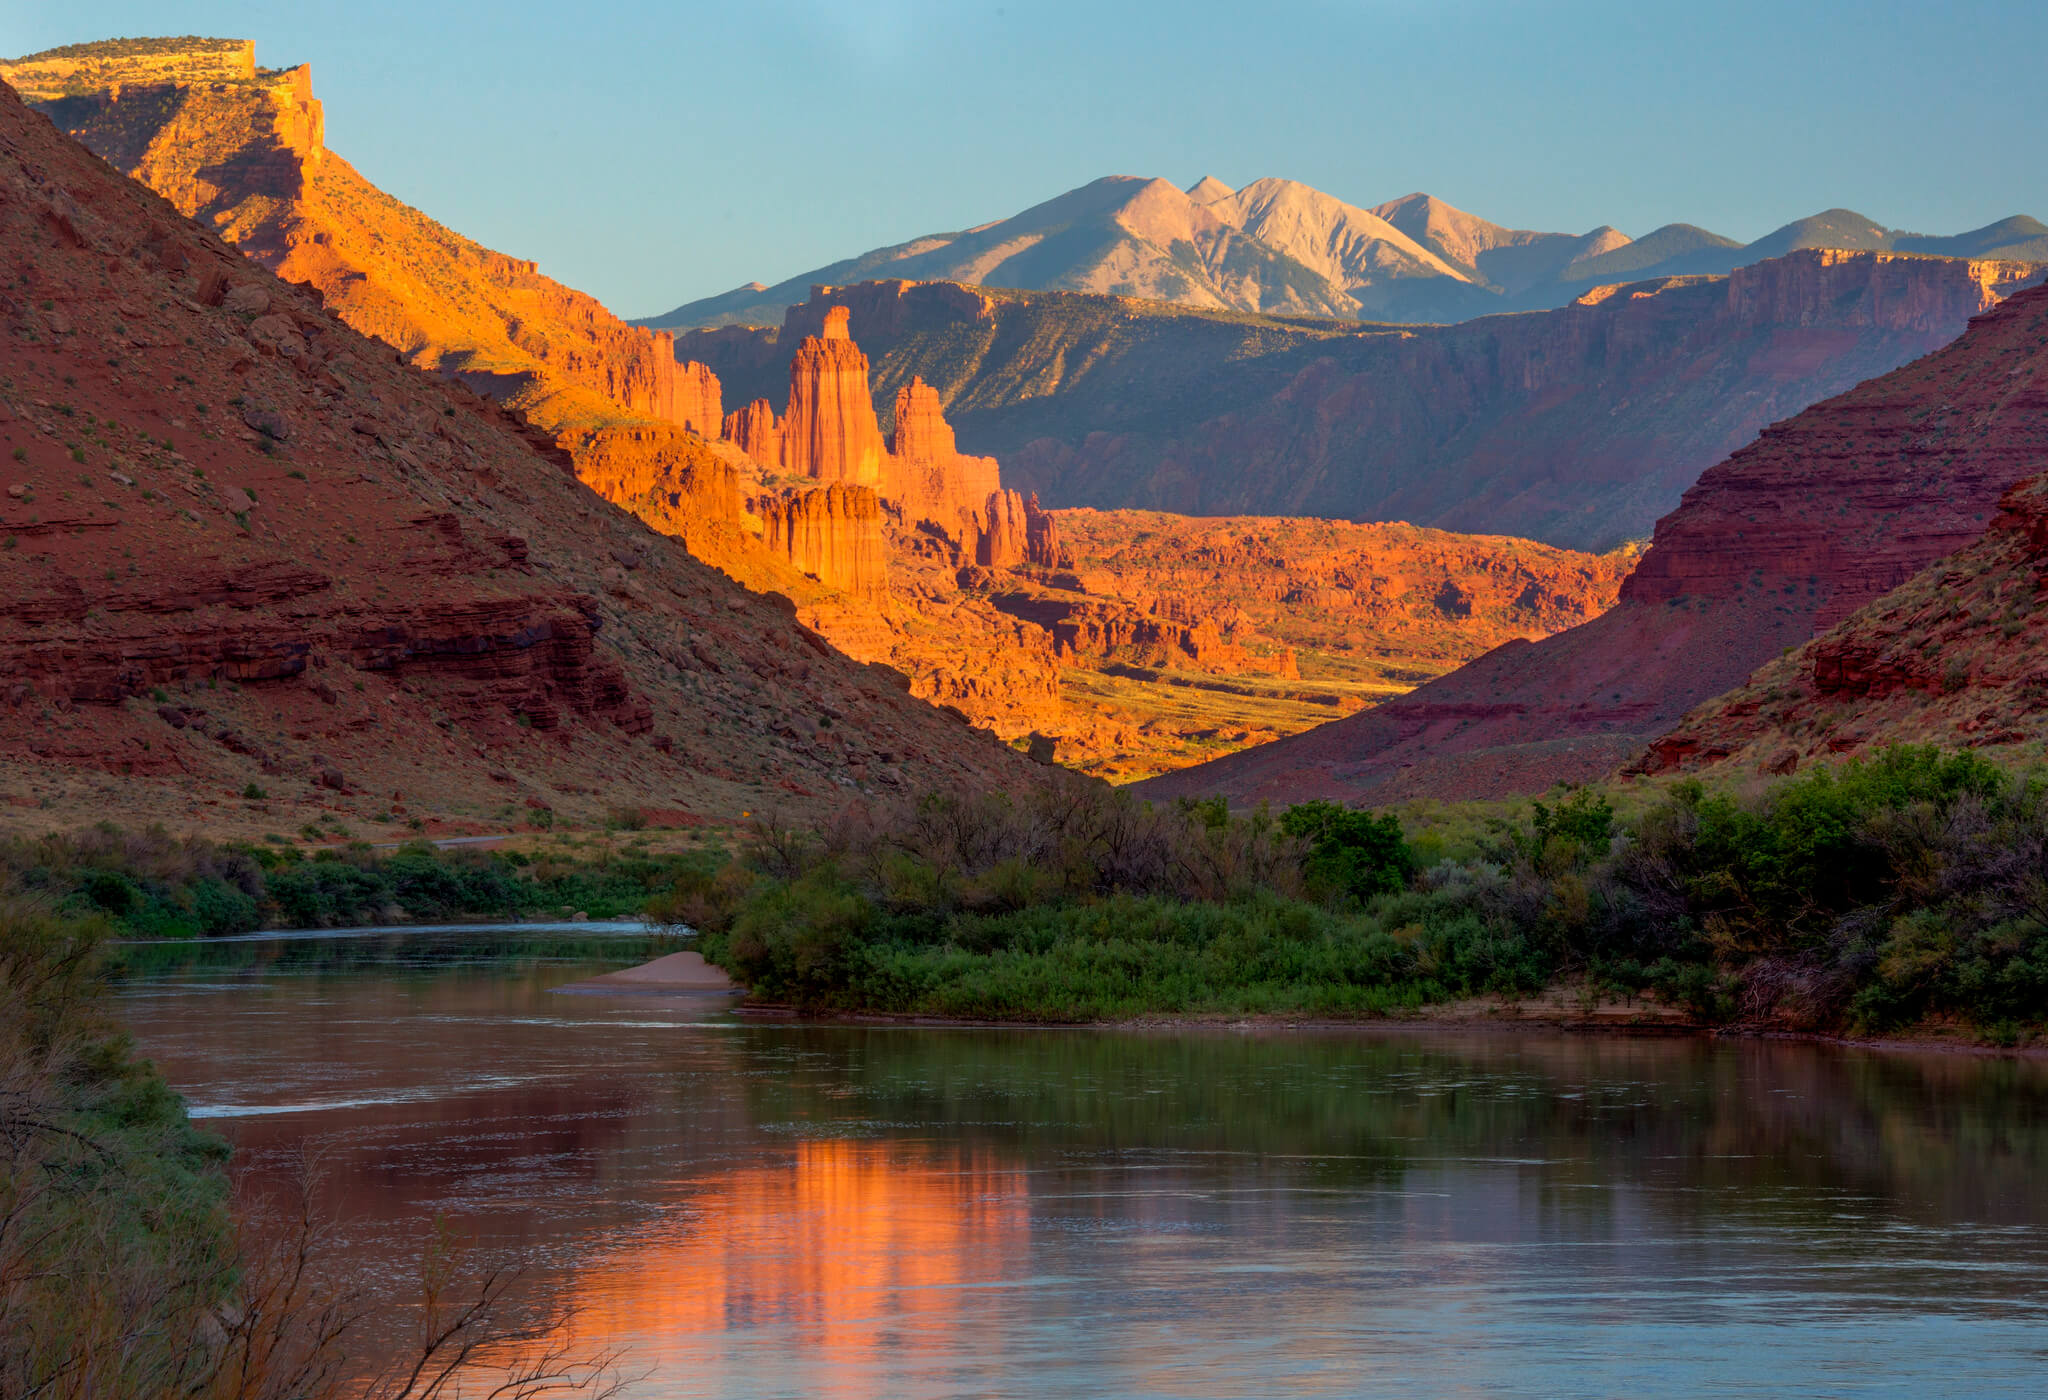 Colorado River - Bureau of Land Management | used by permission from Flickr